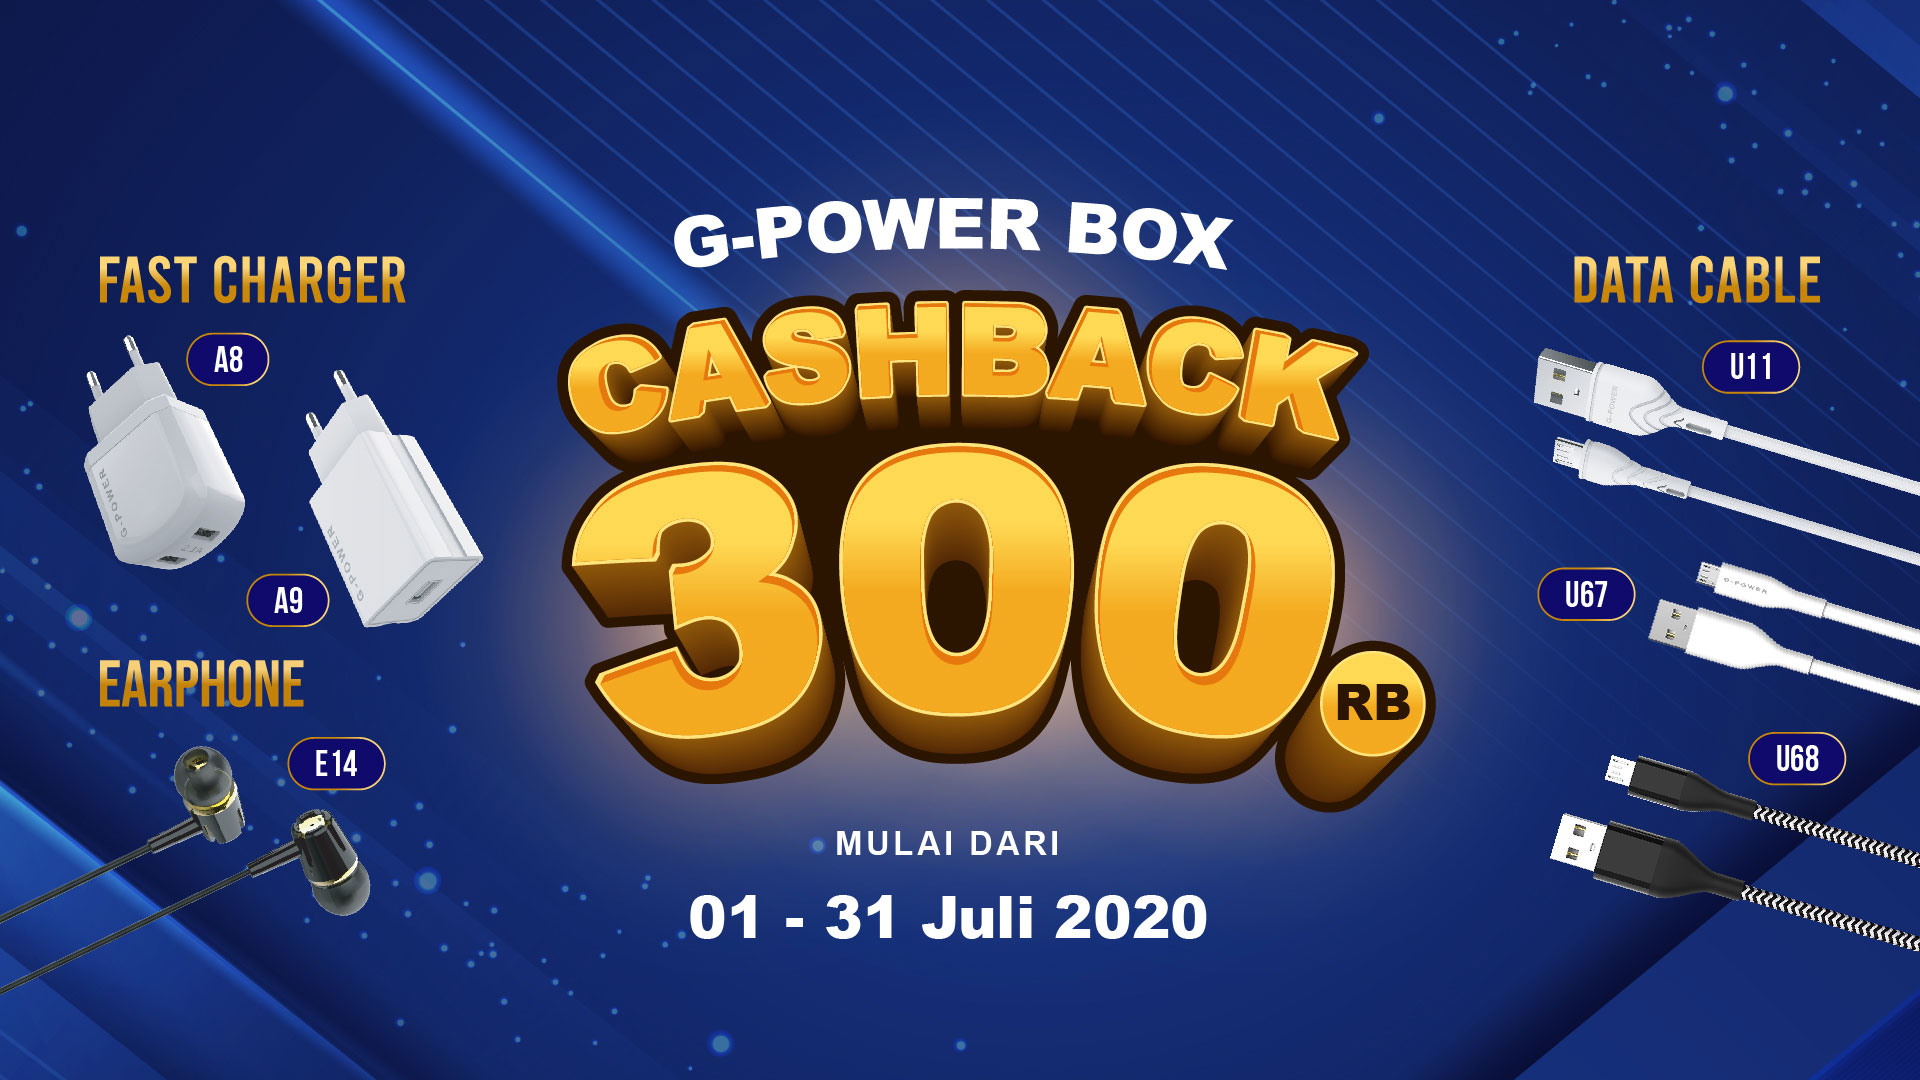 altr-ultimate-ecommerce_gpower_wdd_home_graphic_main-slider_E01M06P01-Promo-July-2020-Cashback-300rb.jpg